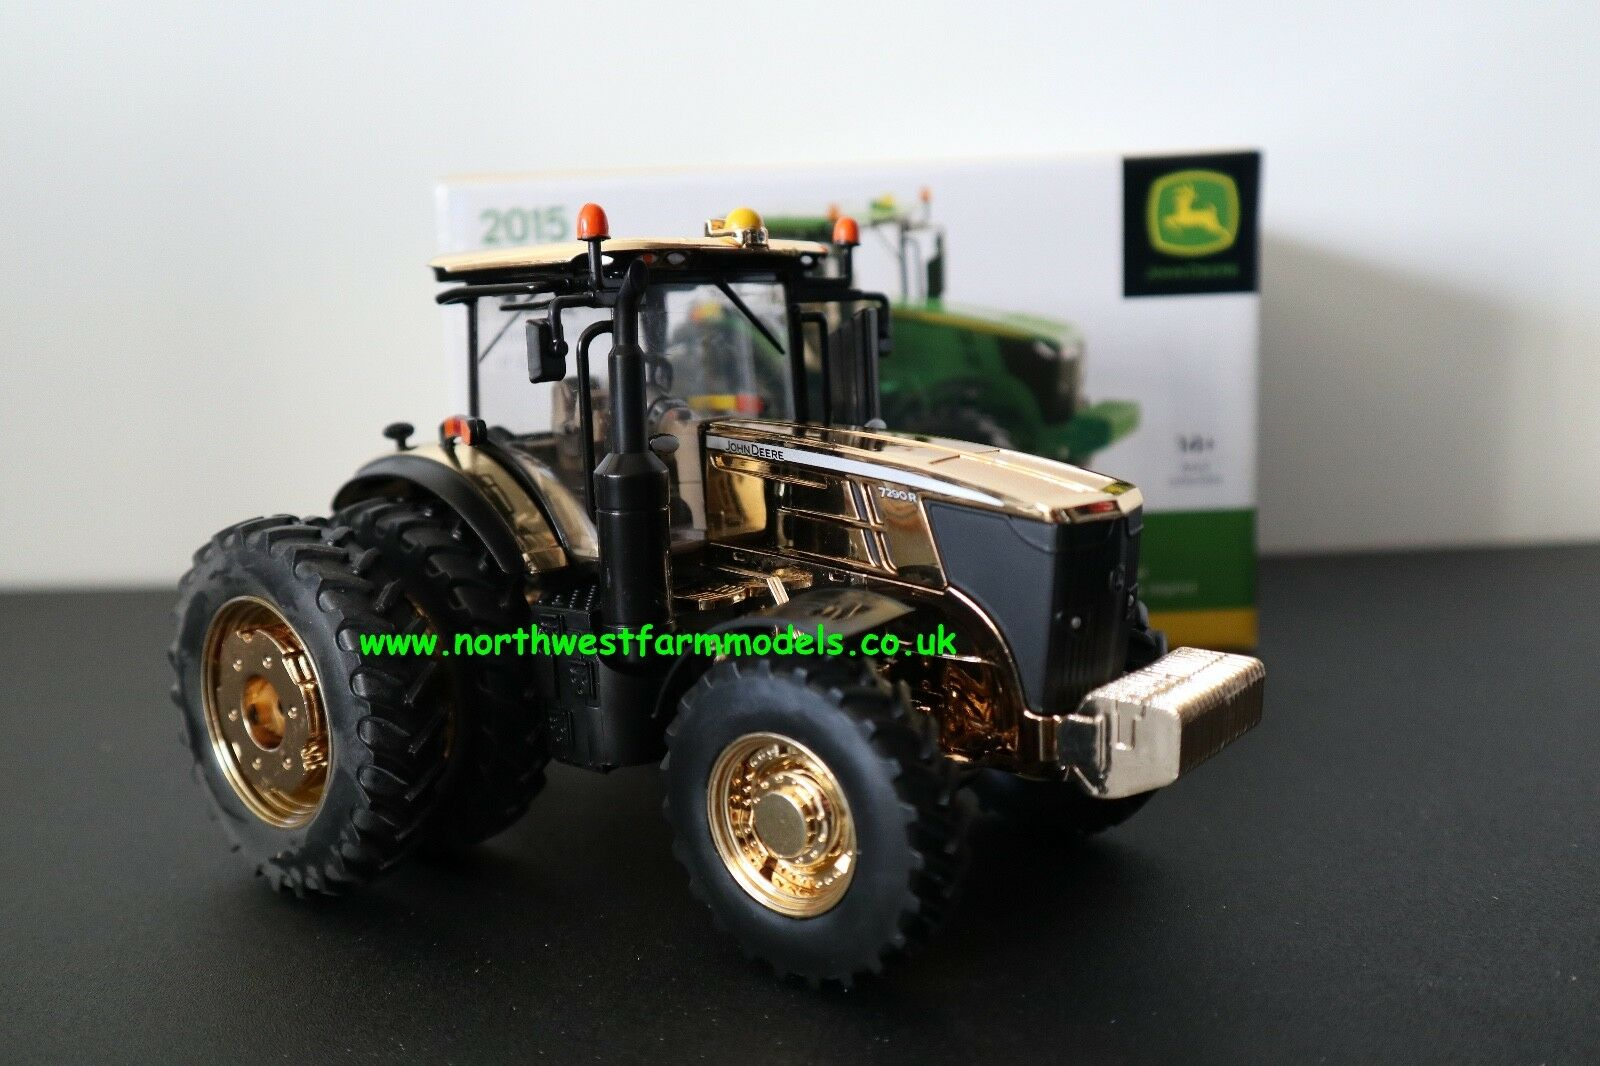 ERTL BRITAINS FARM 1 32 SCALE JOHN DEERE 7290R FARM SHOW EDITION gold CHROME